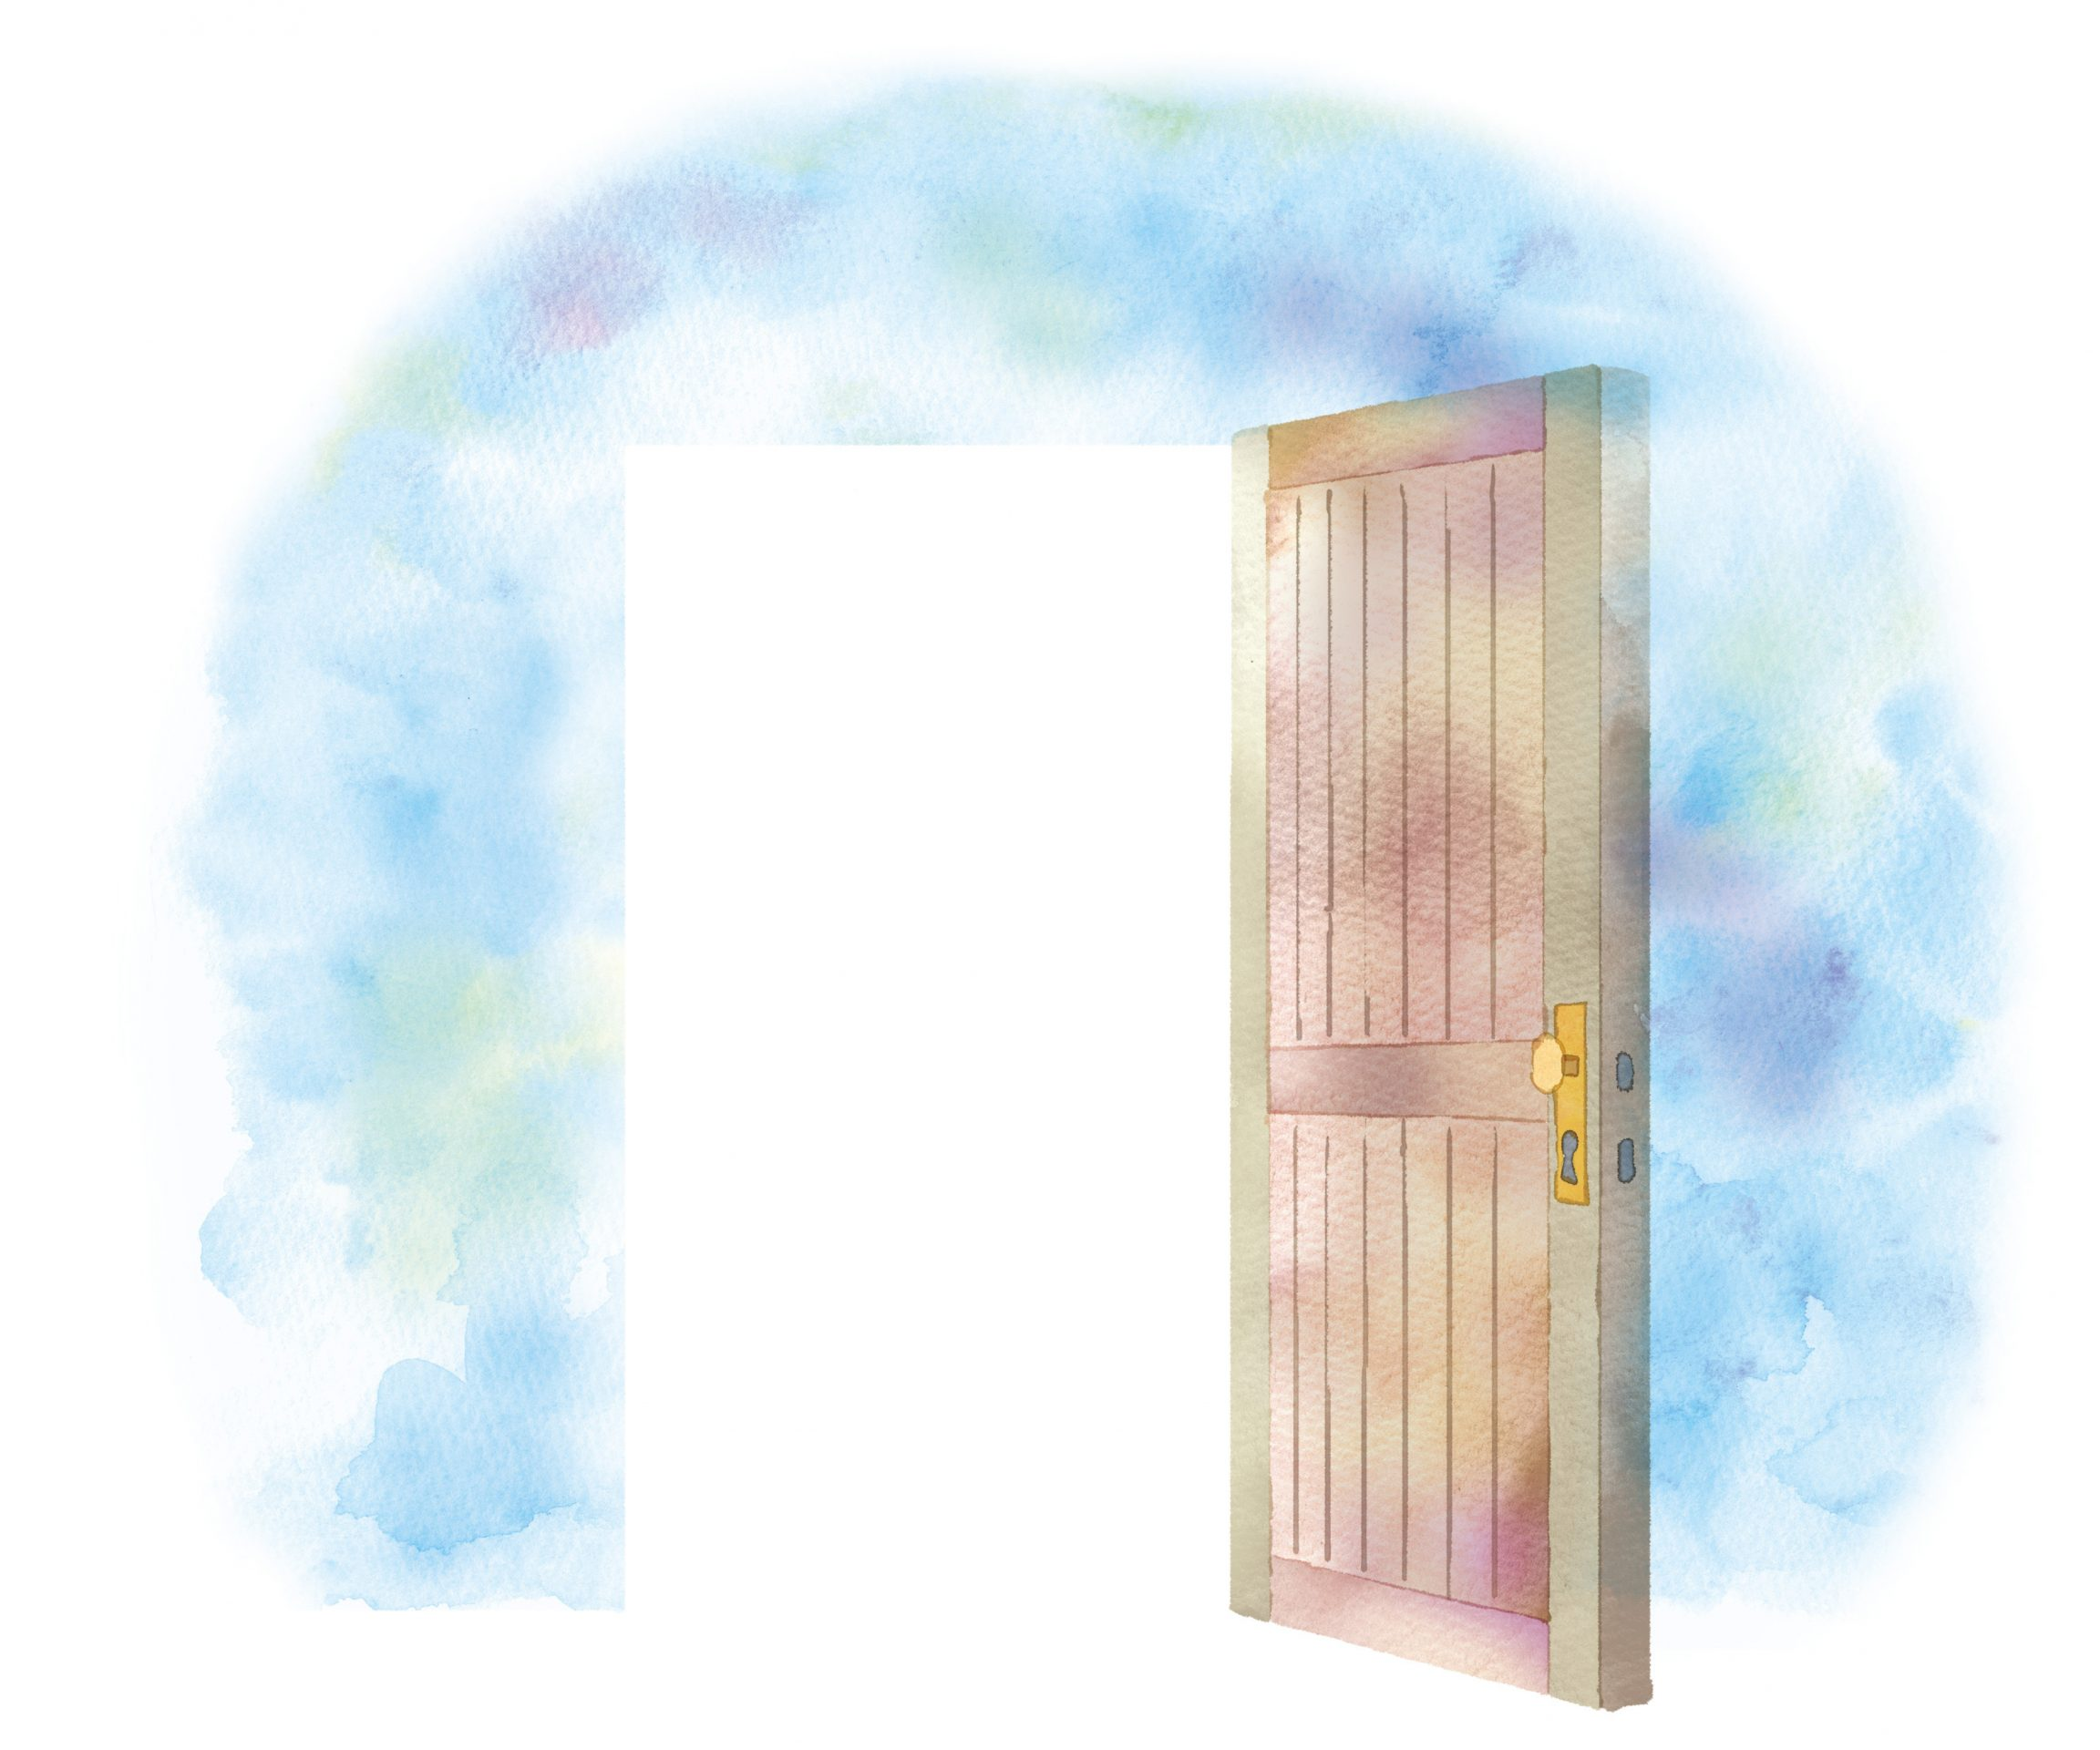 Watercolor wooden door opening into the light surrounded by blue sky